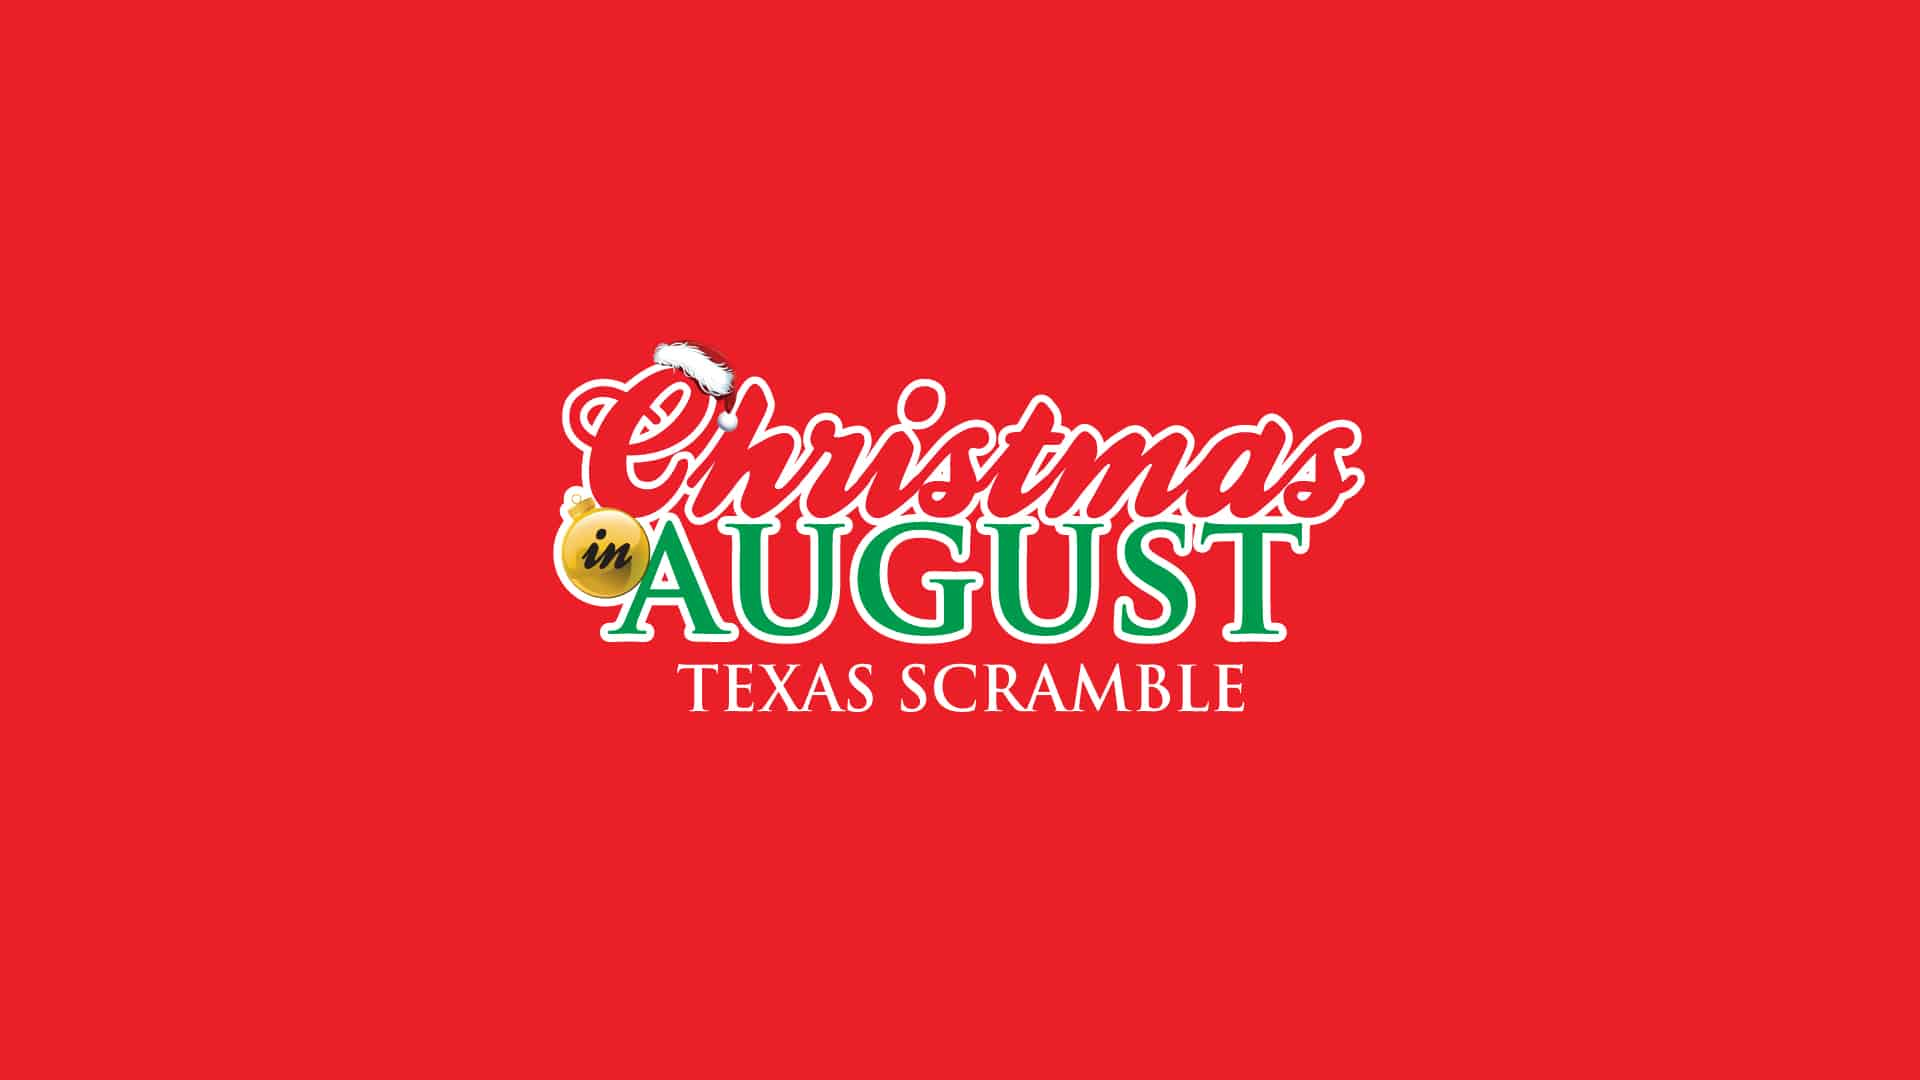 Christmas in August Texas Scramble